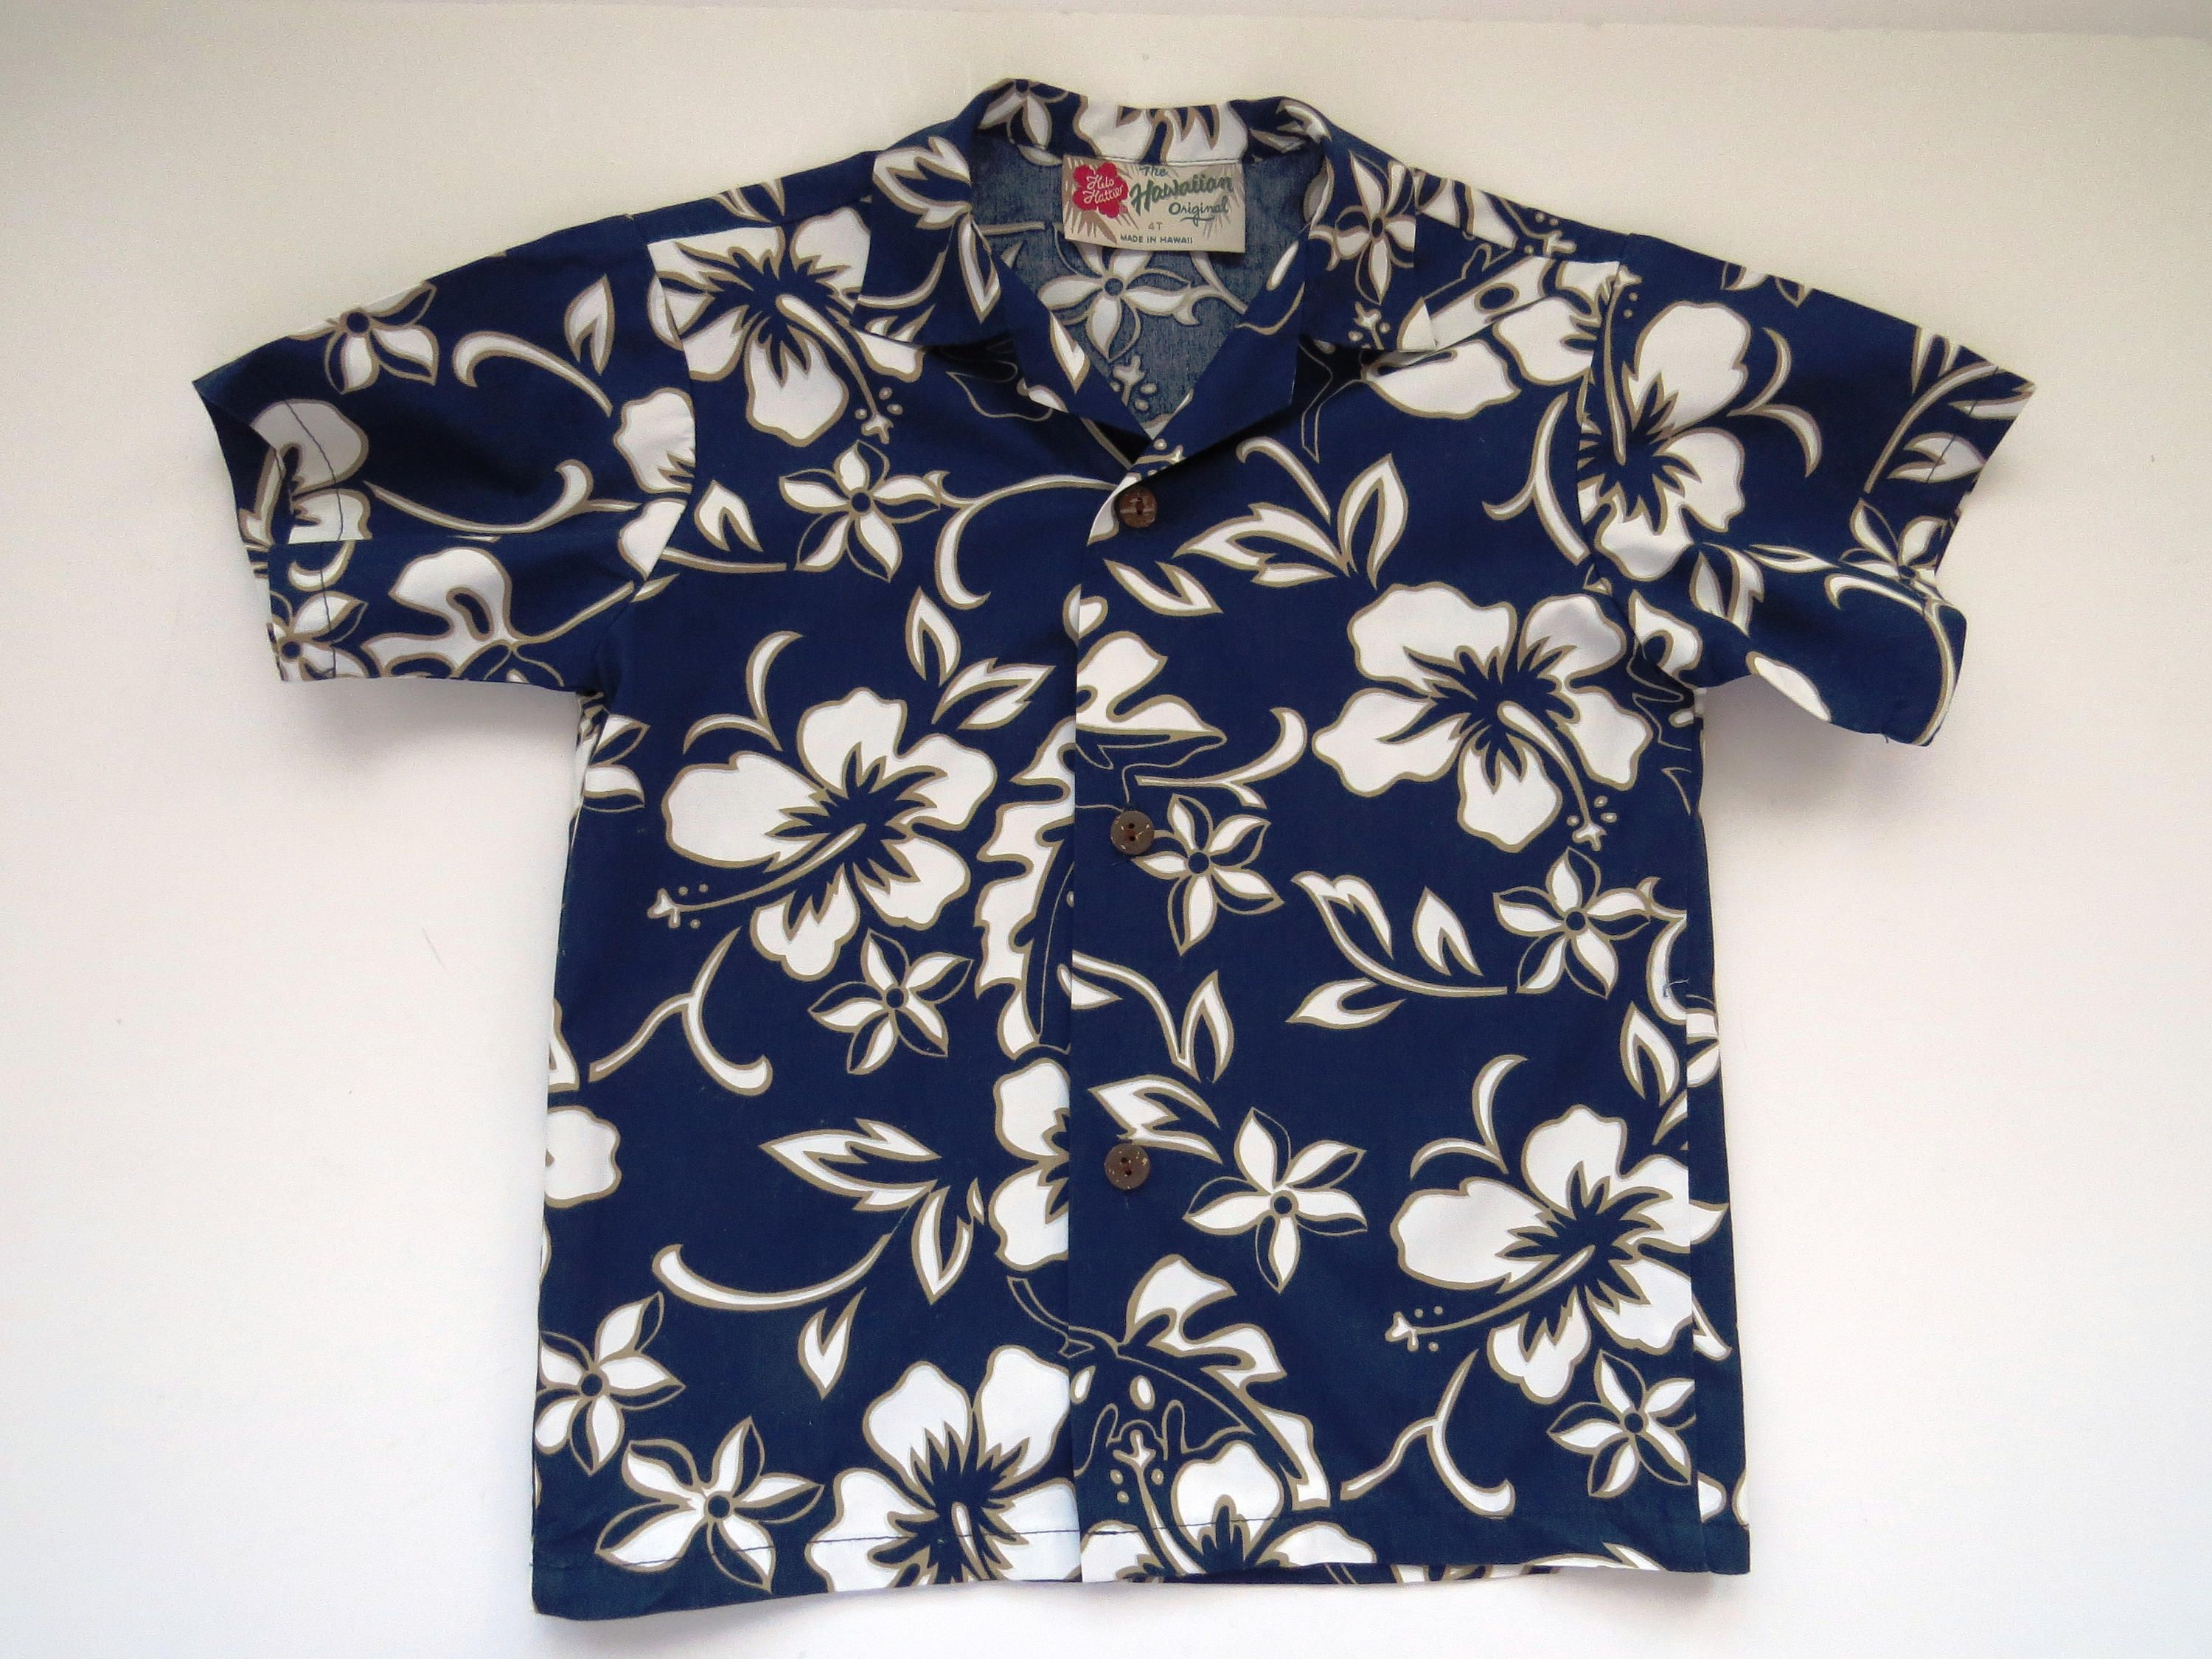 752e694e32 Little Boys Hawaiian Aloha Shirt by Hilo Hattie - Size 4T - Made in Hawaii  - Toddler Child - Blue White Hibiscus - Luau - Vacation - School by ...